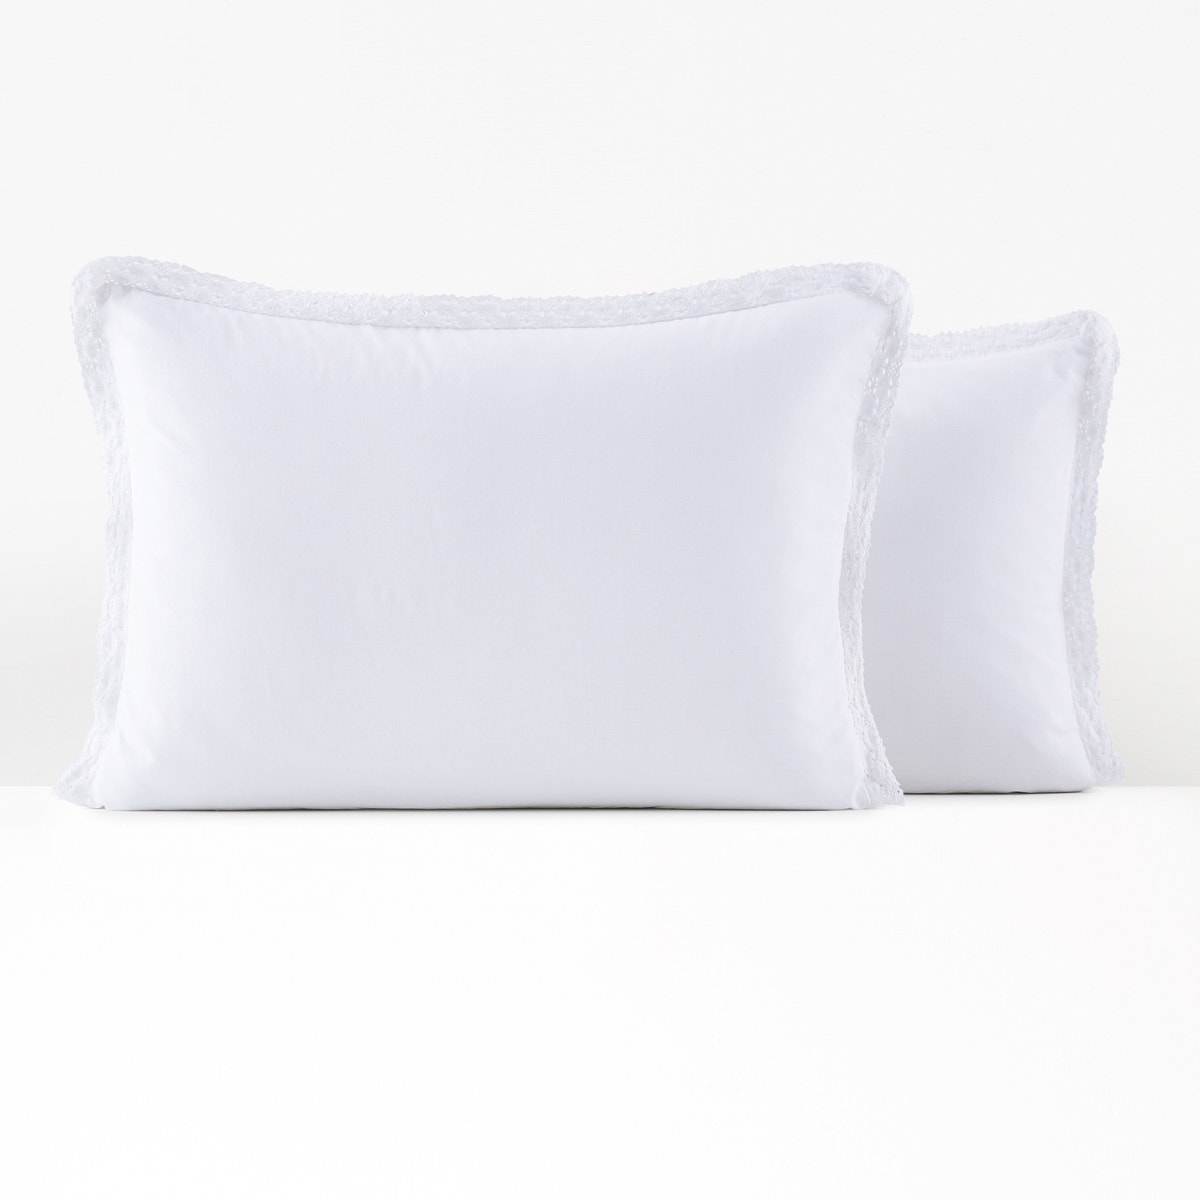 Alhambra Pillowcase in Washed Cotton